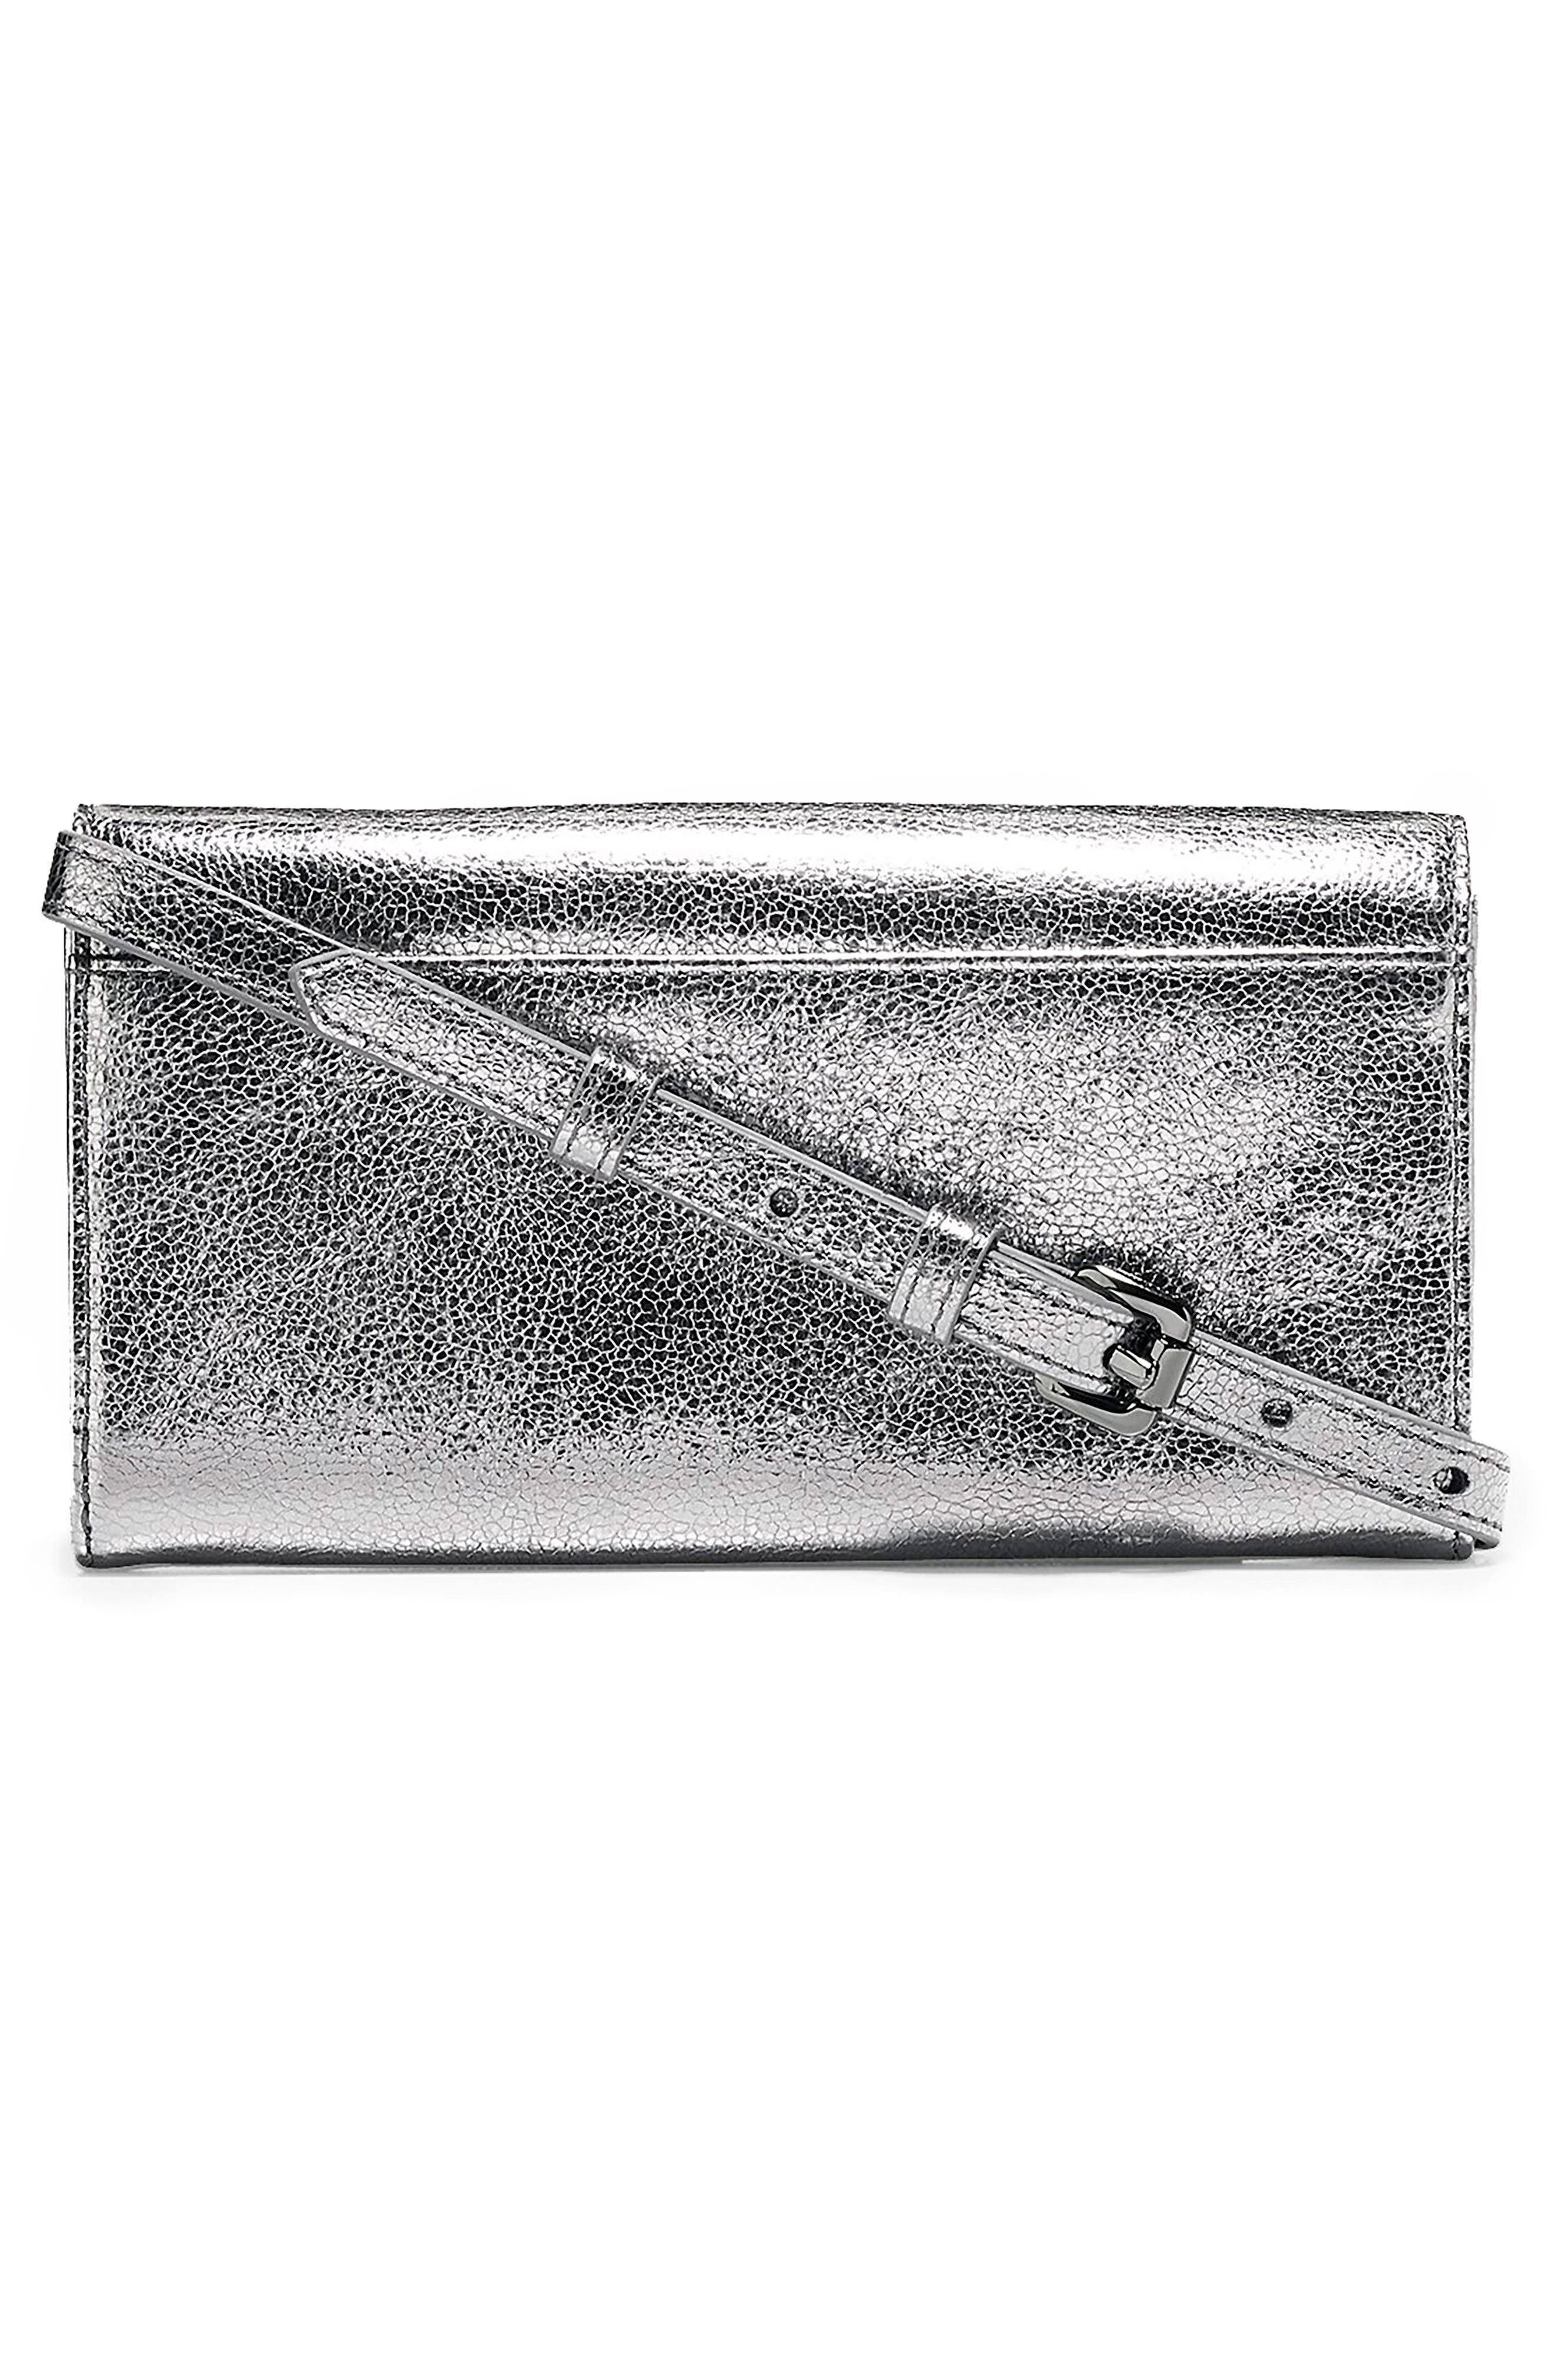 Marli Studded Metallic Leather Convertible Smartphone Clutch,                             Alternate thumbnail 2, color,                             Anthracite